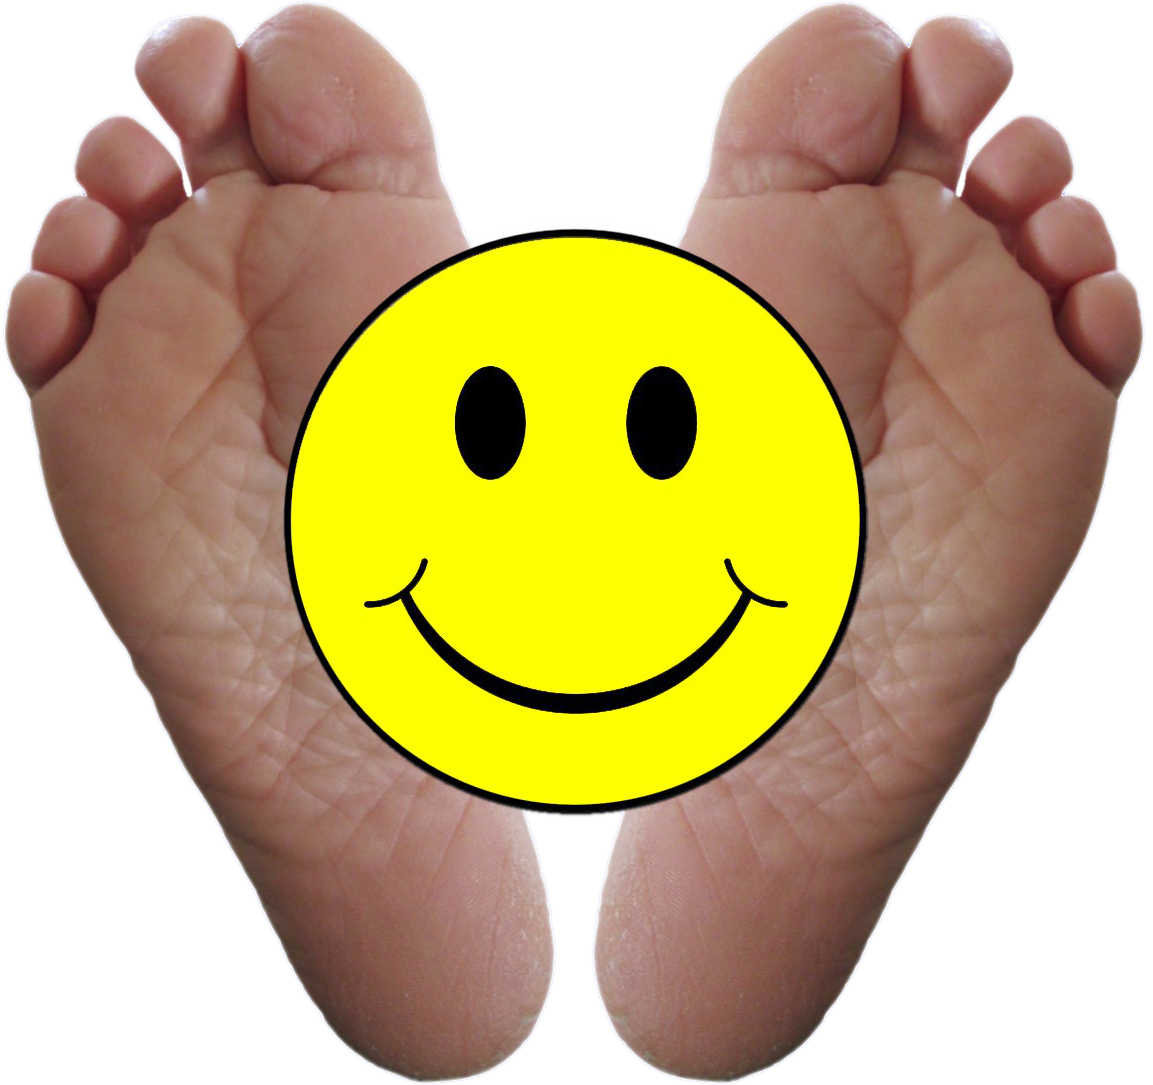 happy_feet_w_smiley